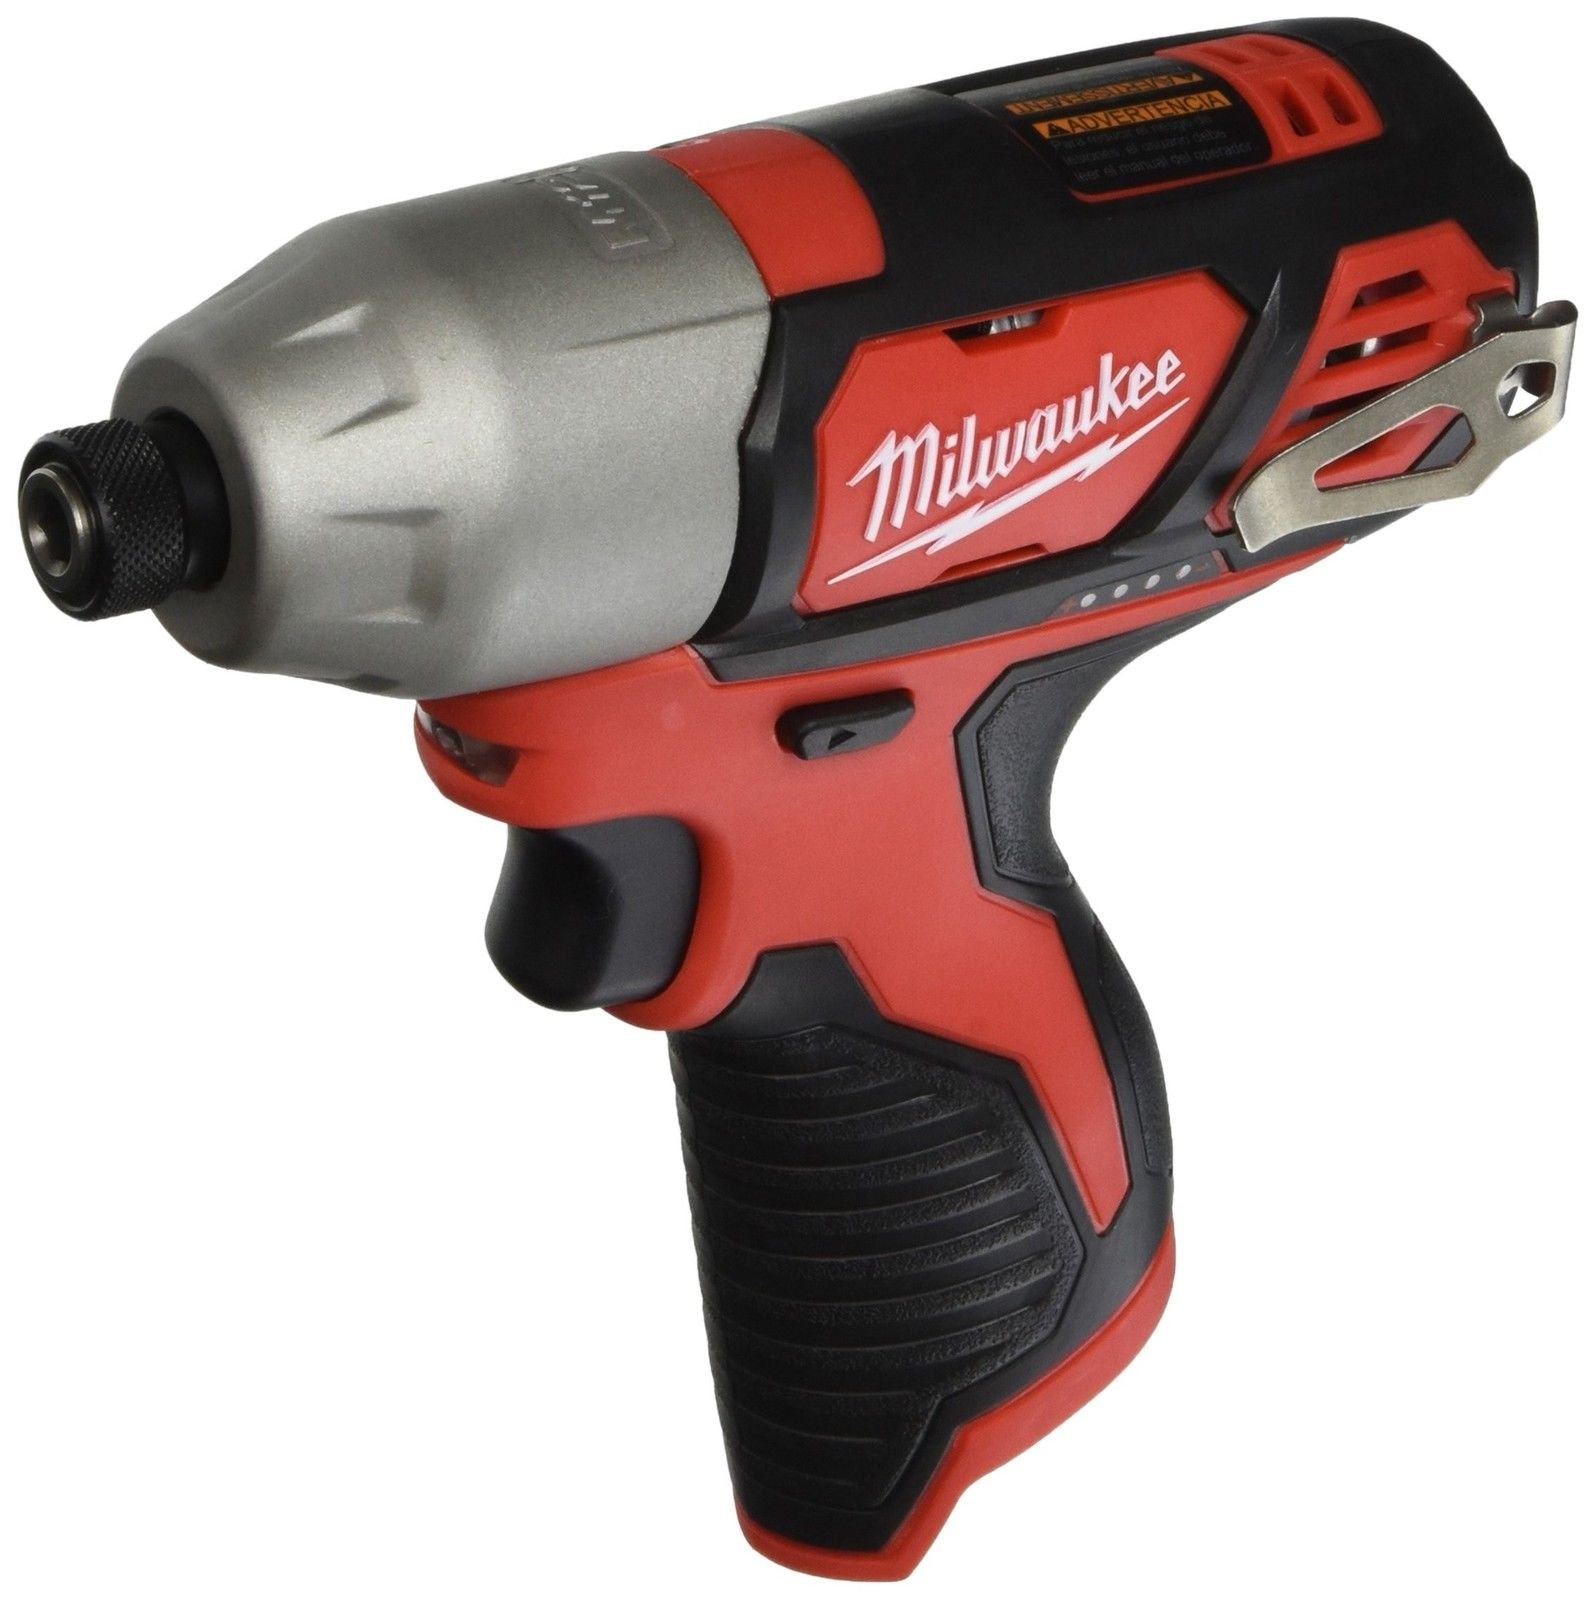 Milwaukee 2462-20 M12 1/4 Hex Impact Driver - Bare -by# gbb_power, #UGEIO63282144333752